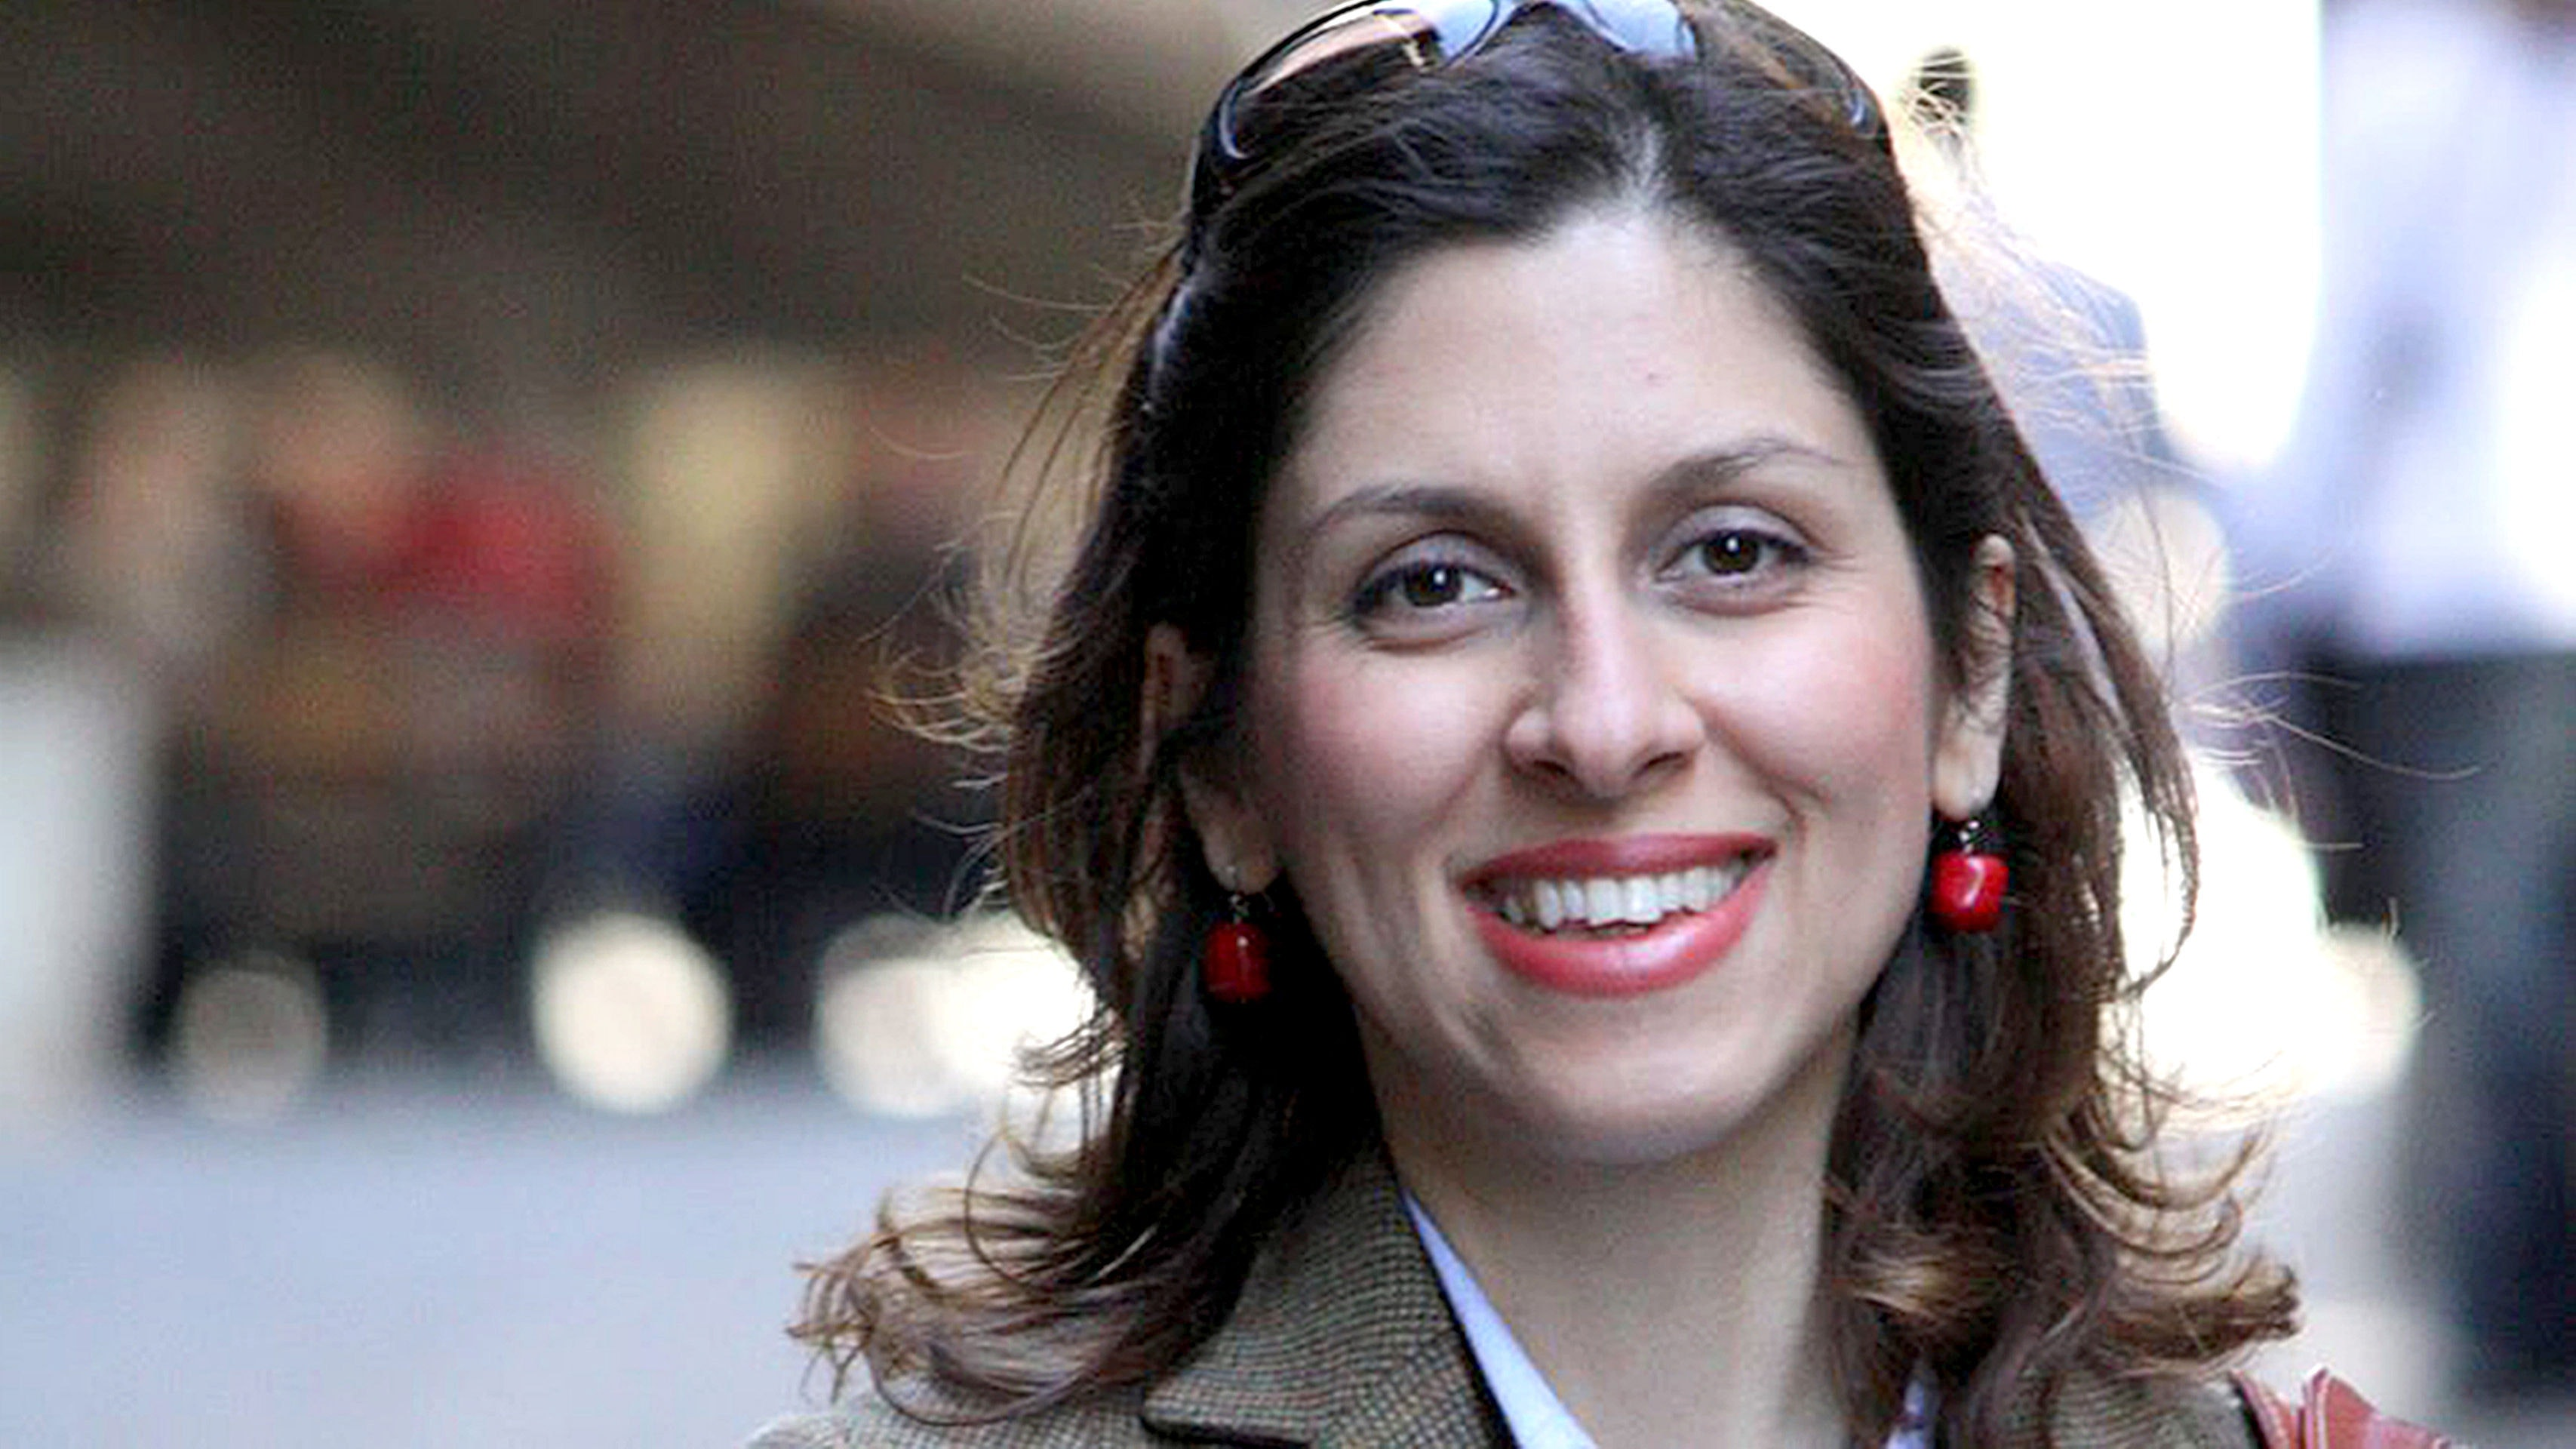 Jailed British-Iranian aid worker moved to hospital psychiatric ward